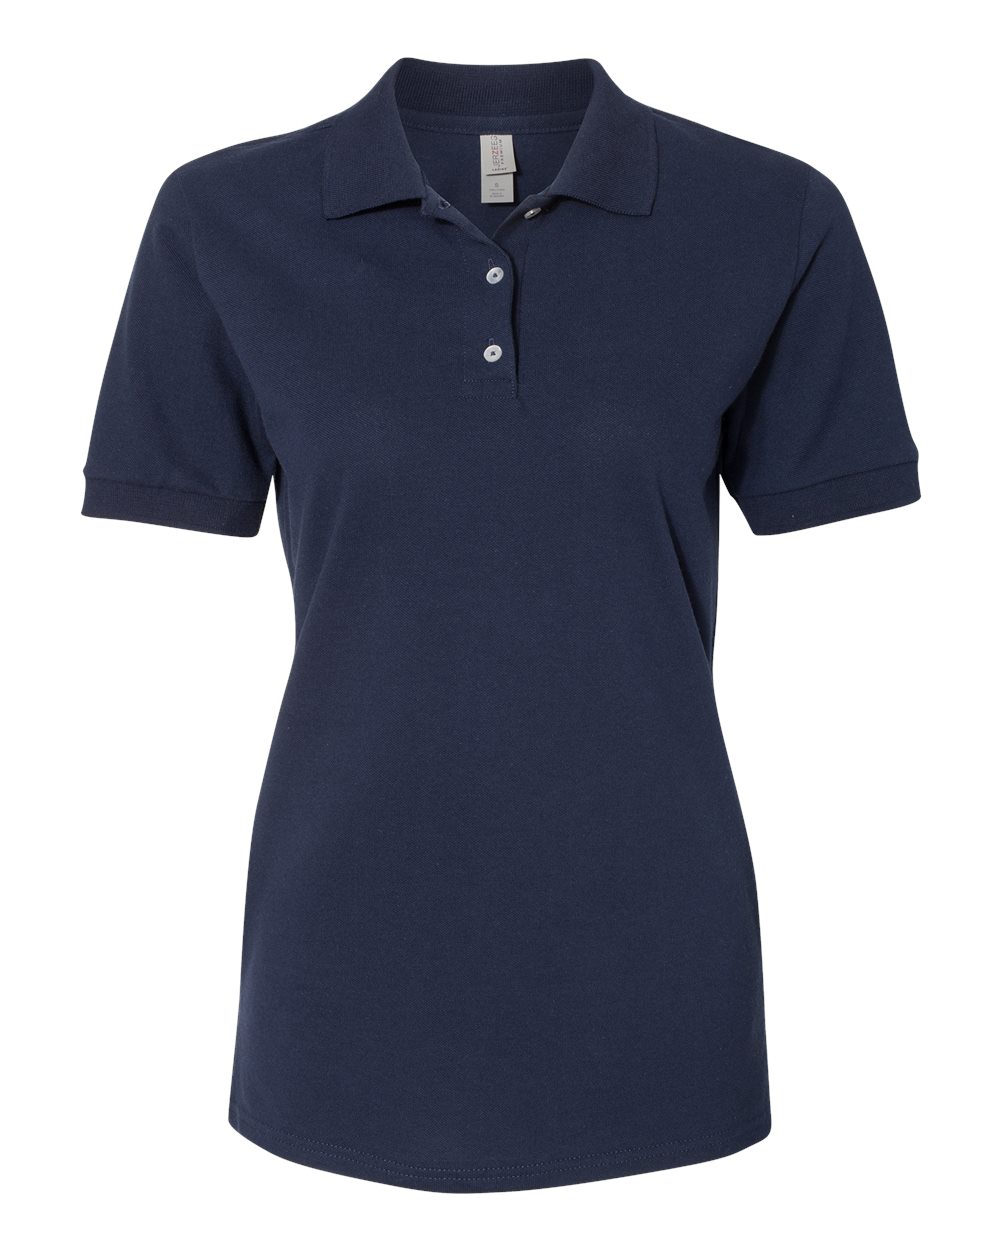 Jerzees-Women-039-s-Easy-Care-Double-Mesh-Ringspun-Pique-Polo-Sport-Shirt-443W thumbnail 13